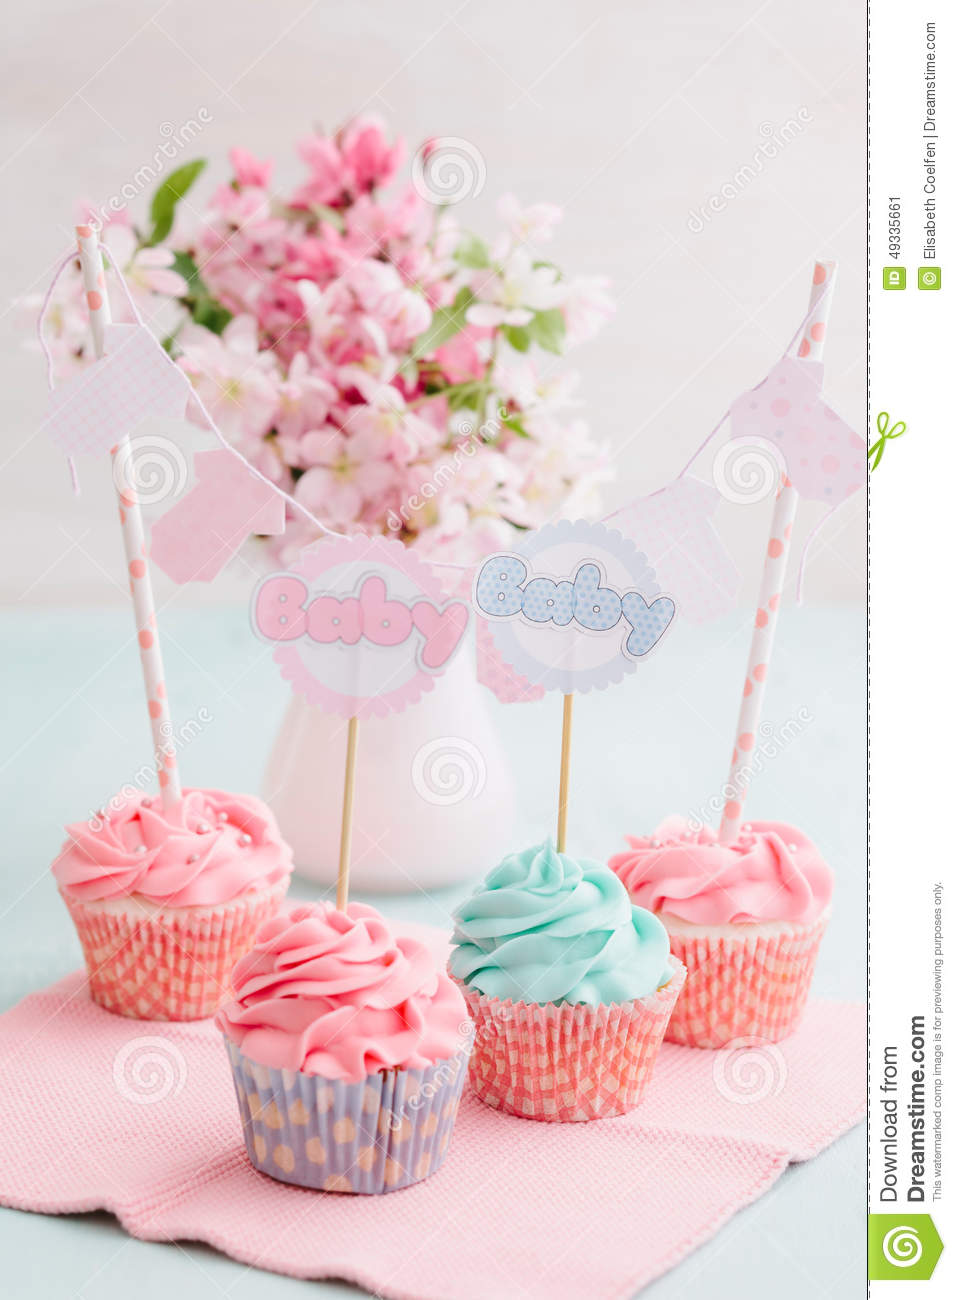 baby shower cupcakes stock photo image 49335661